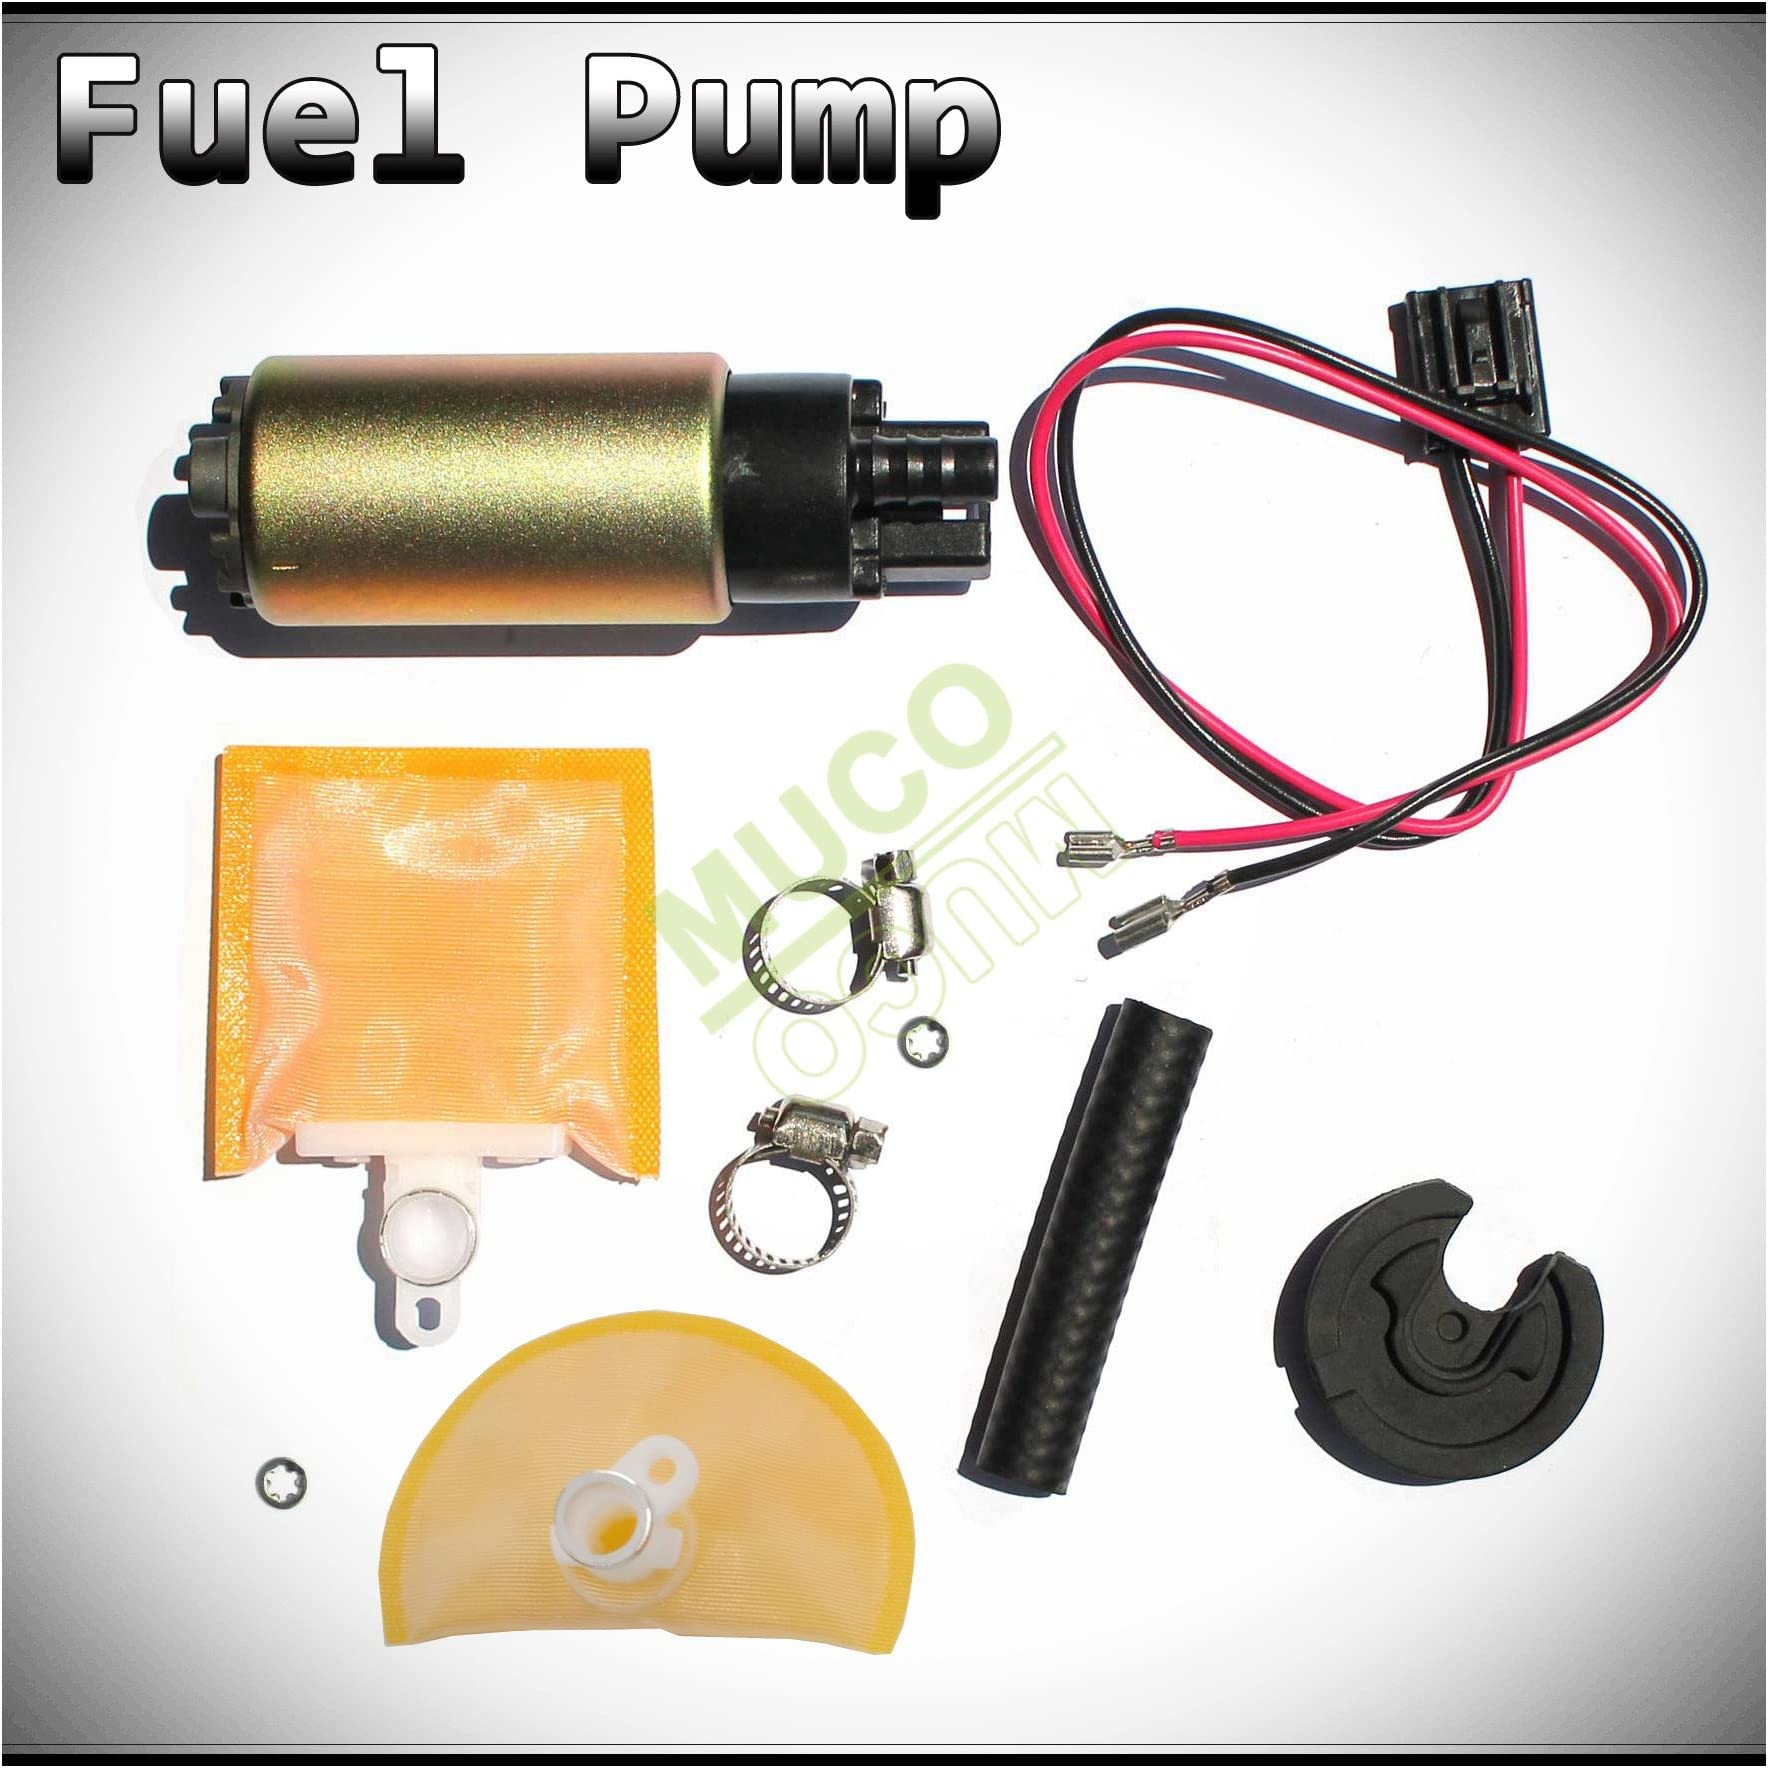 81BXVh6vV7L._AC_SR201266_ amazon com electric fuel pumps fuel pumps & accessories automotive  at bakdesigns.co